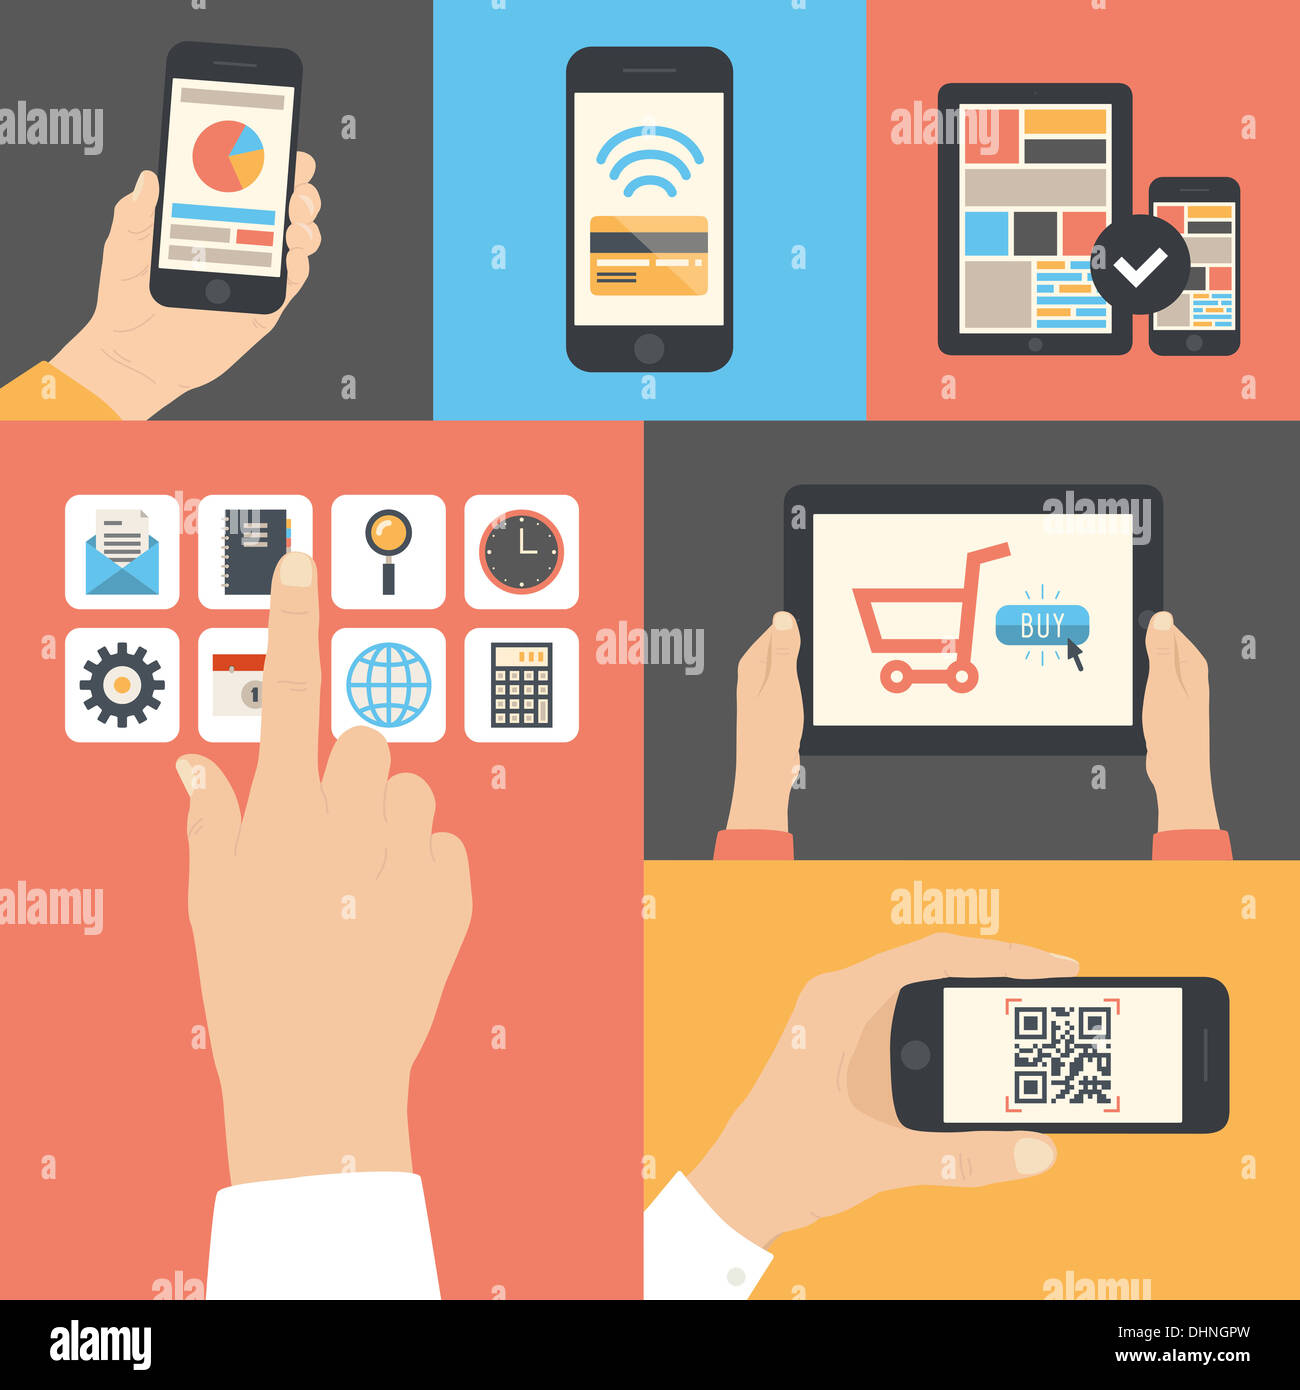 Flat illustration set of touch screen interface, mobile phone scanning qr-code, on-line purchase and e-commerce usage - Stock Image